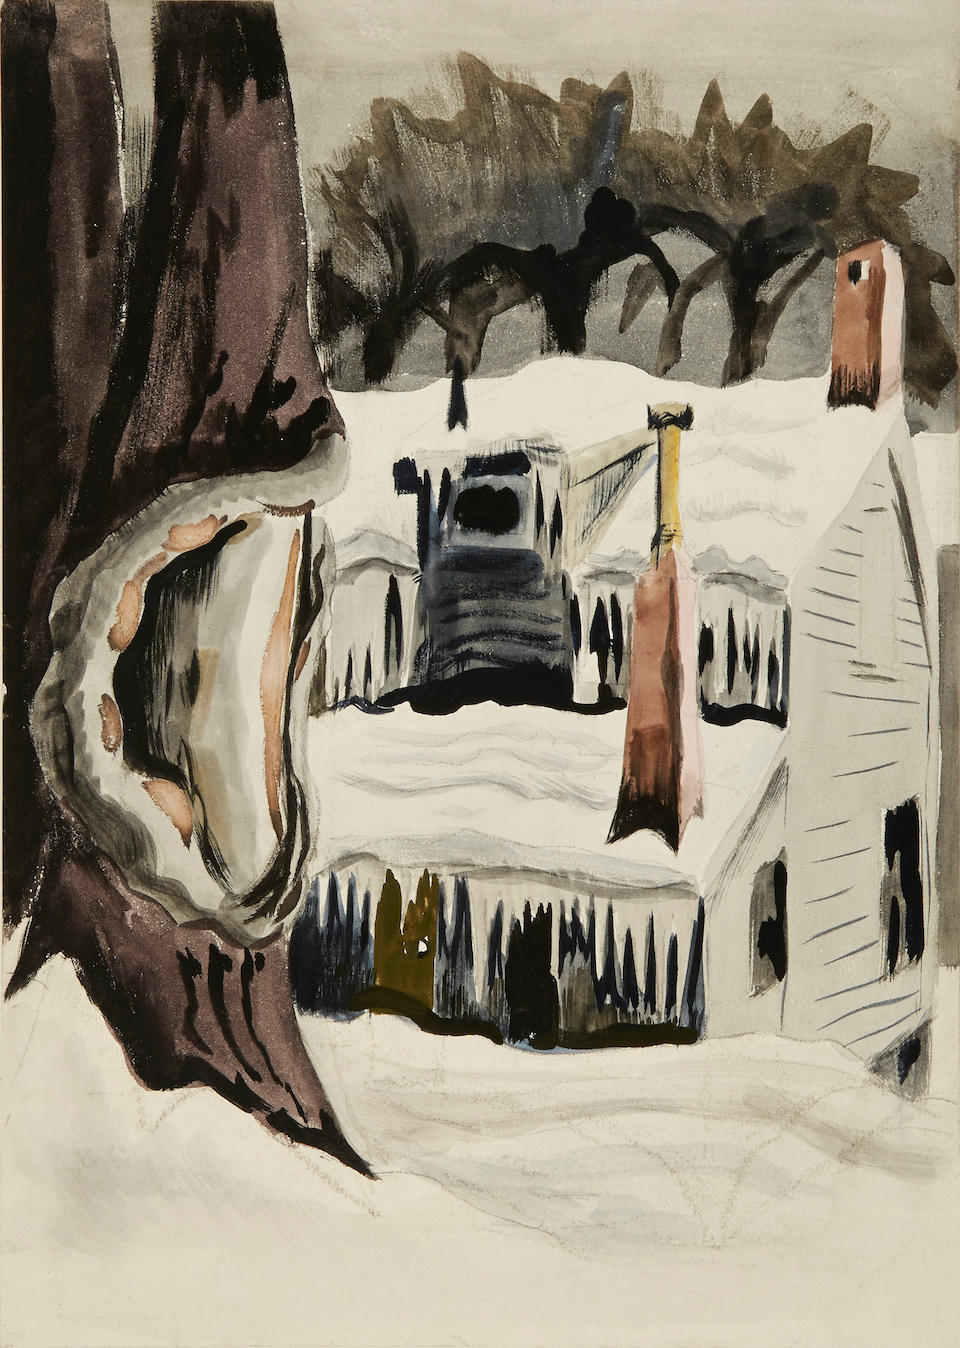 Charles Burchfield (American, 1893-1967) Snow Covered Cottage 14 x 10in, image; 20 x 15in, sheet